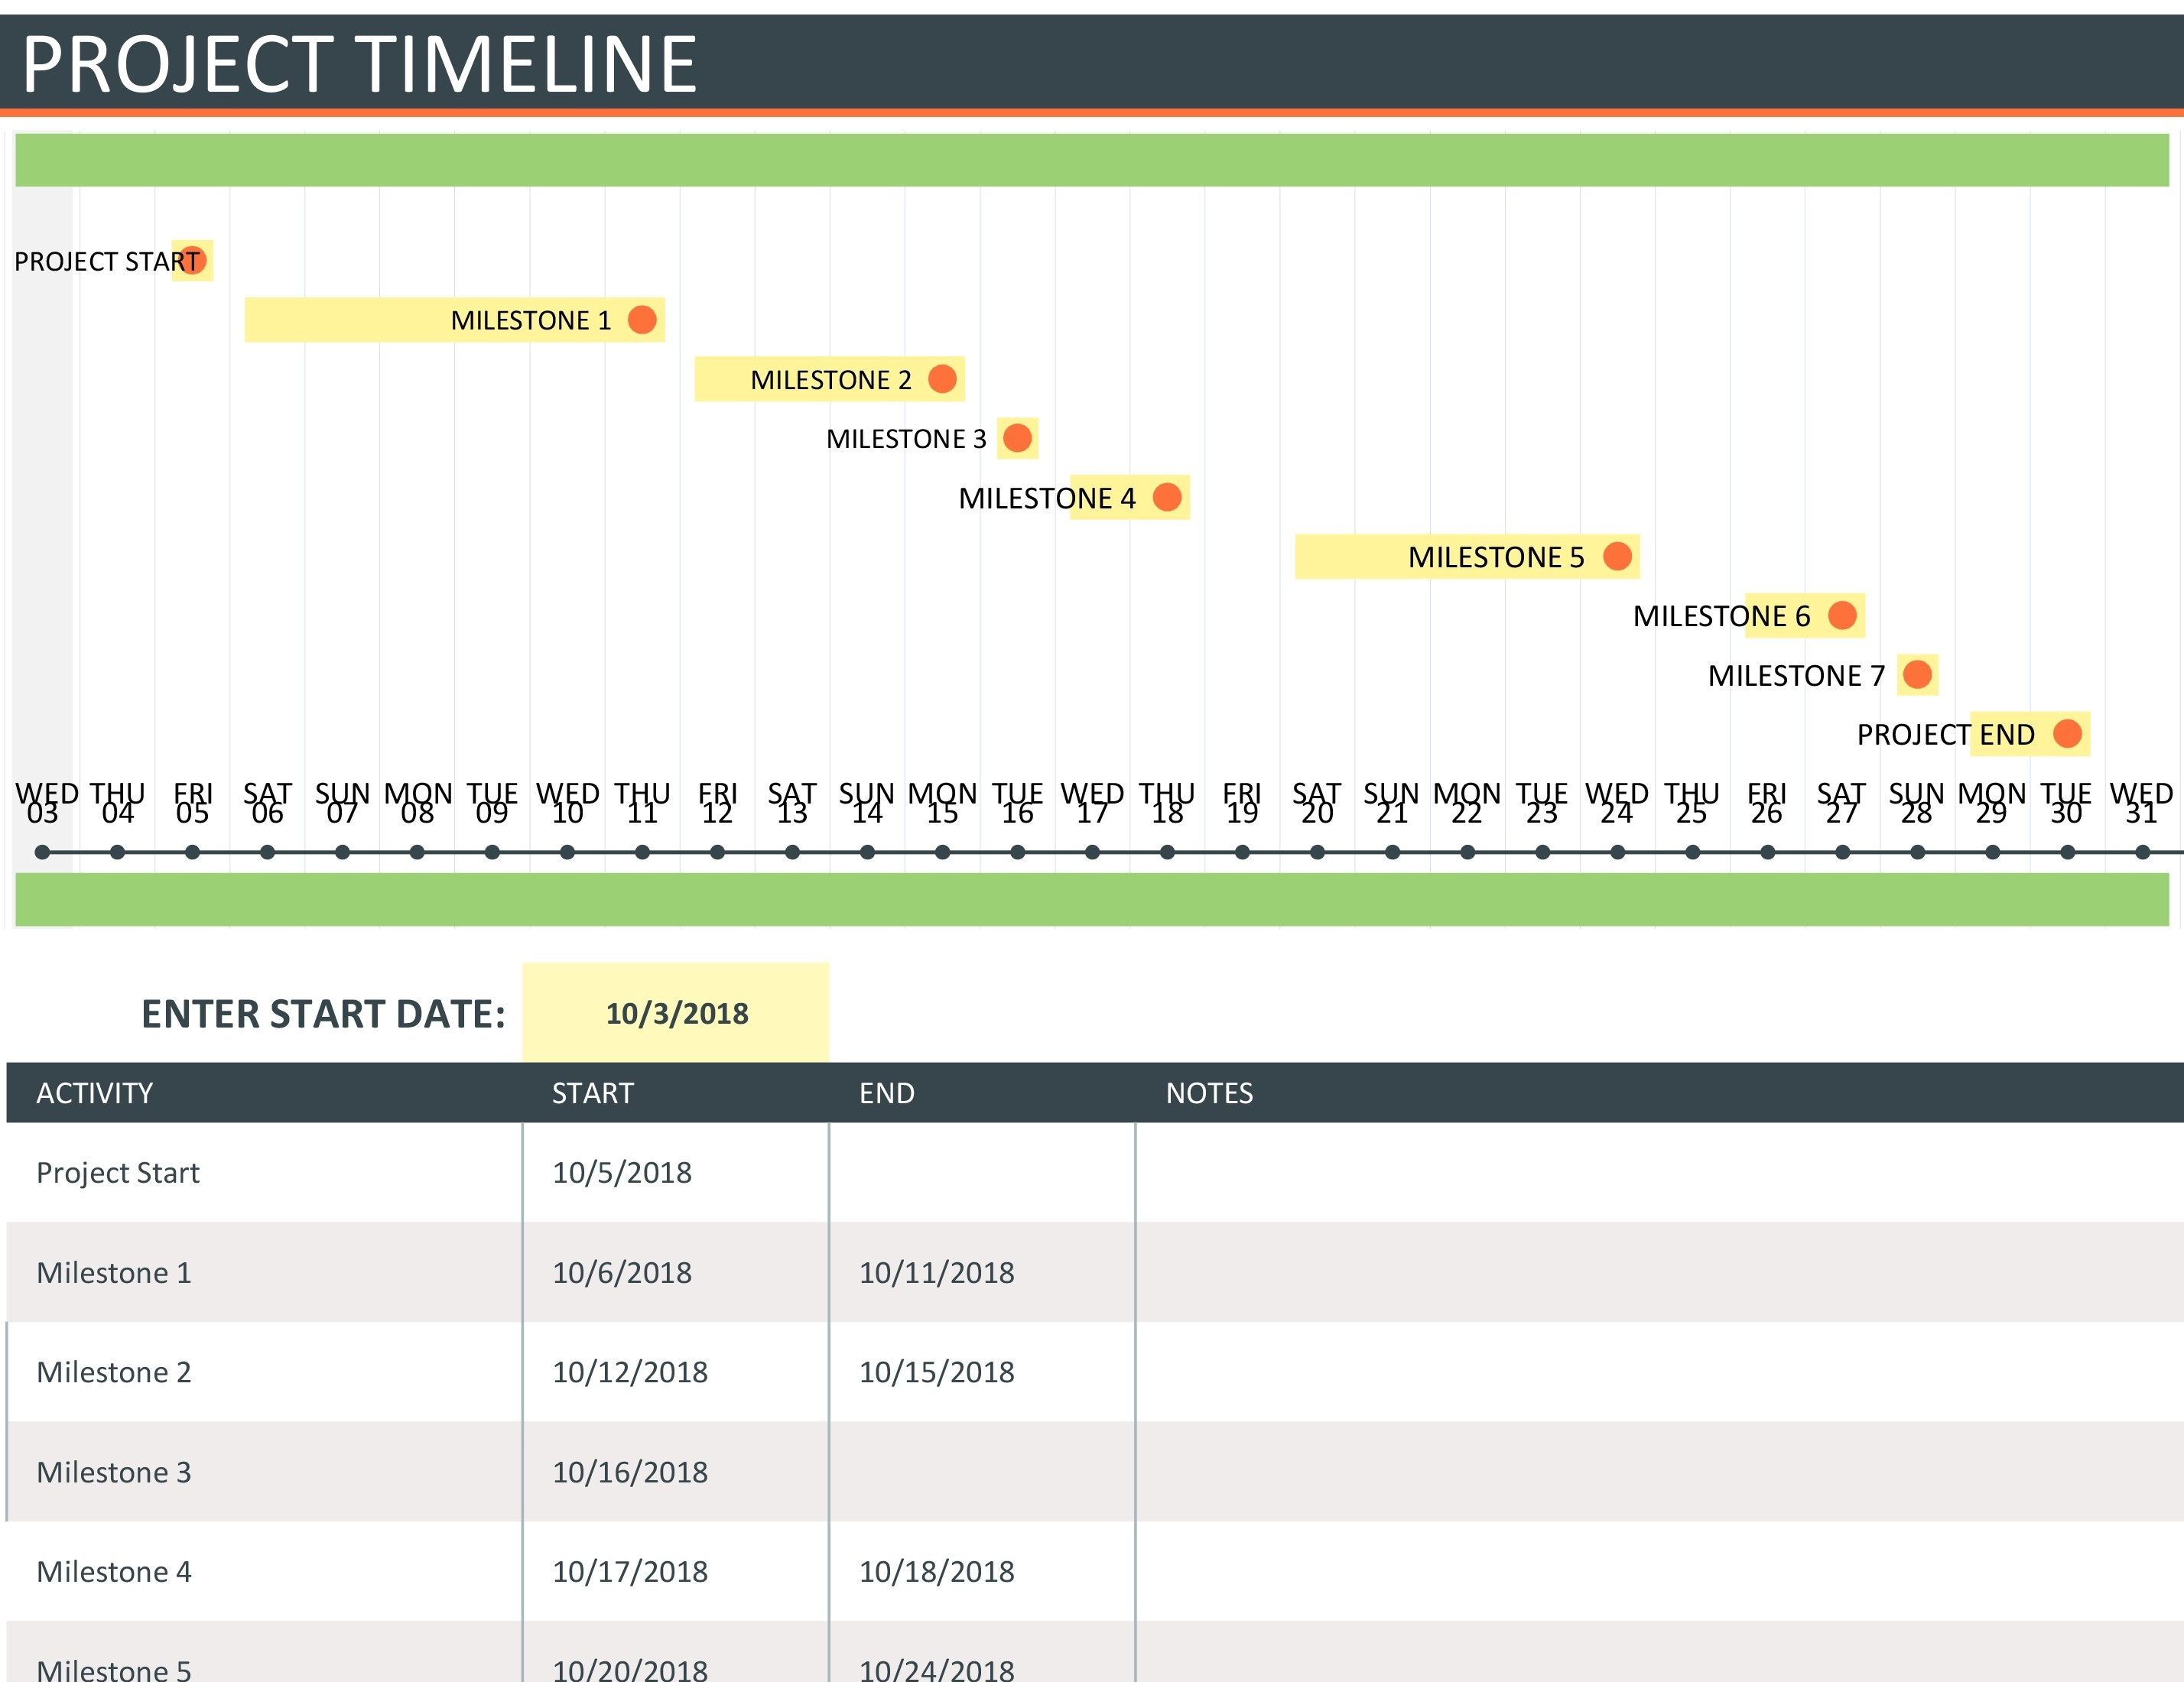 Project Planning Timeline  Outlook Calendar Template 5 Week